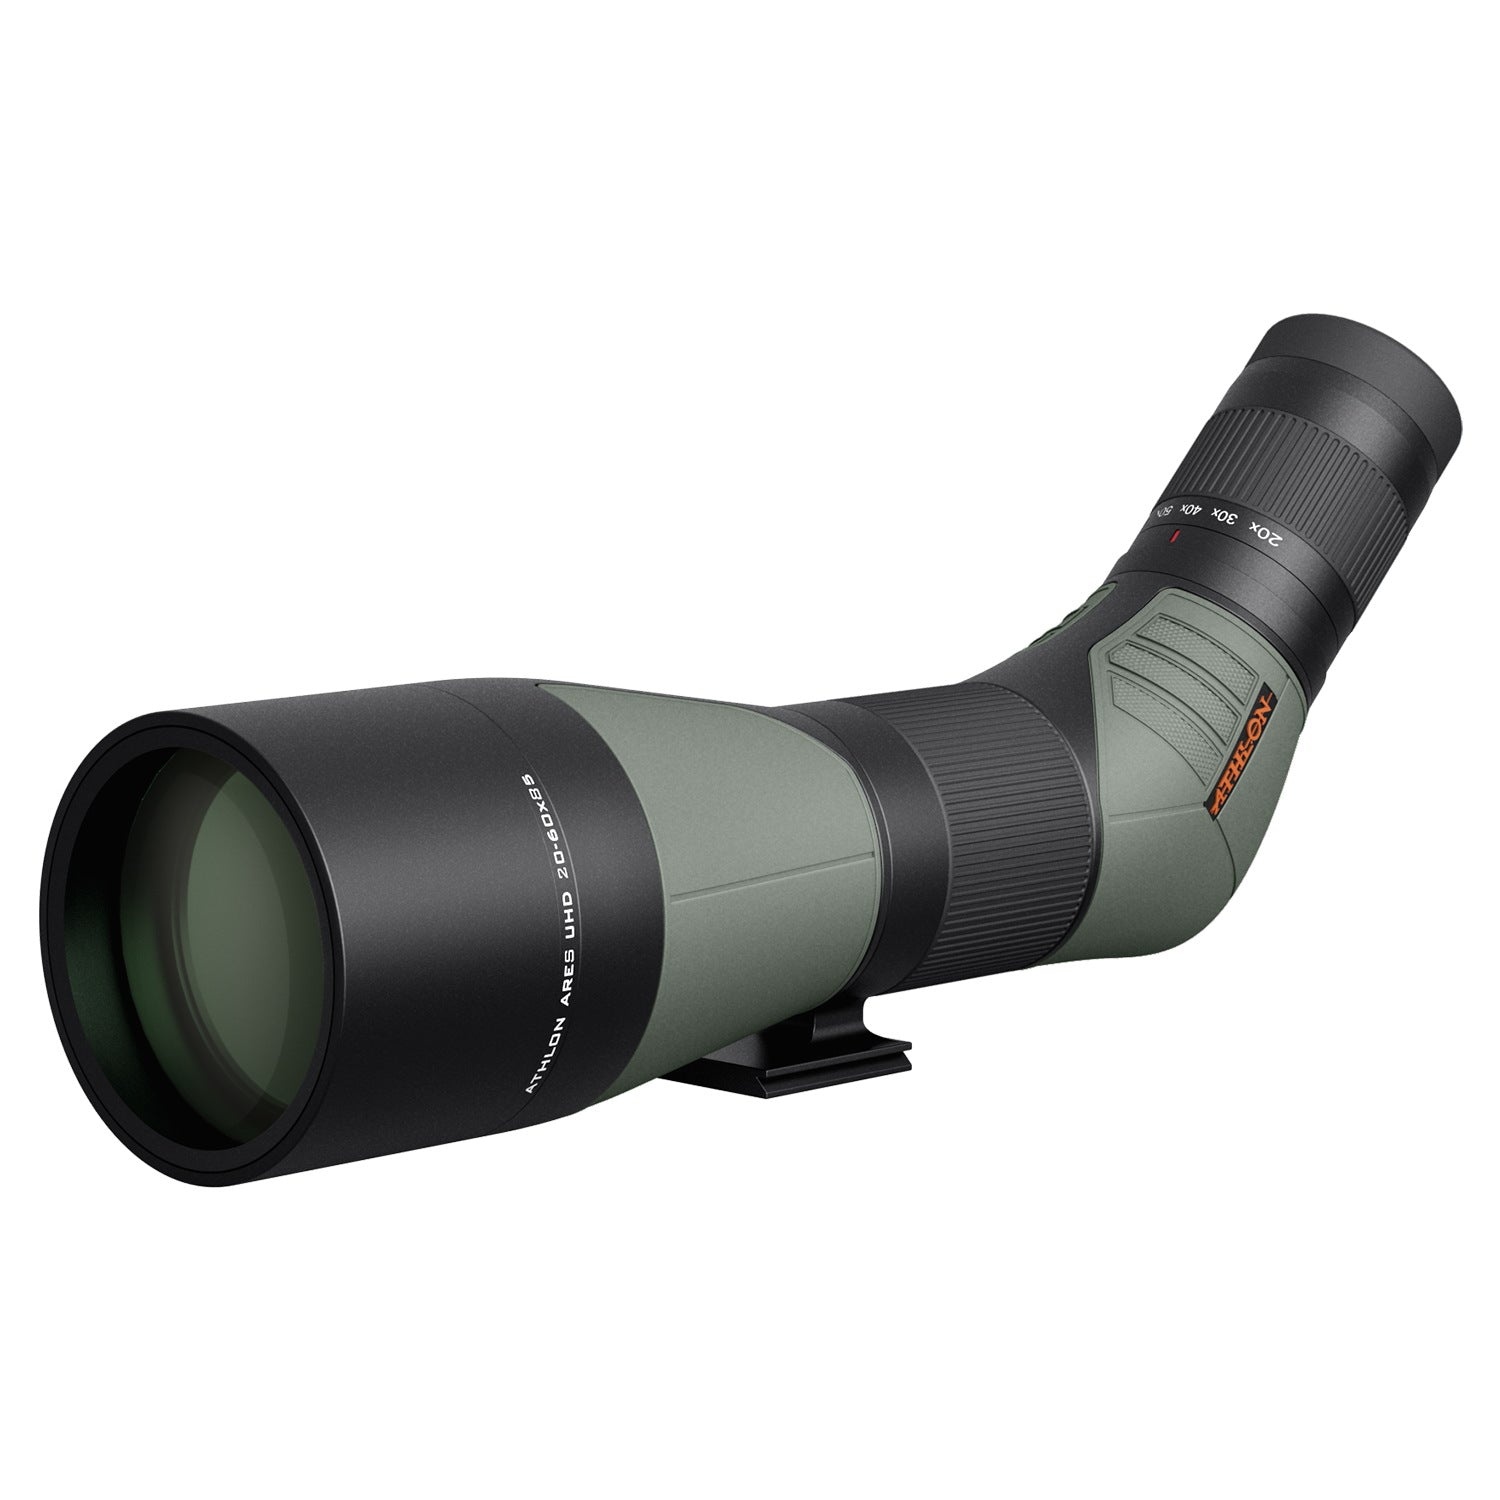 Athlon Optics Ares G2 UHD 20-60×85mm – 45 Degree Spotting Scope